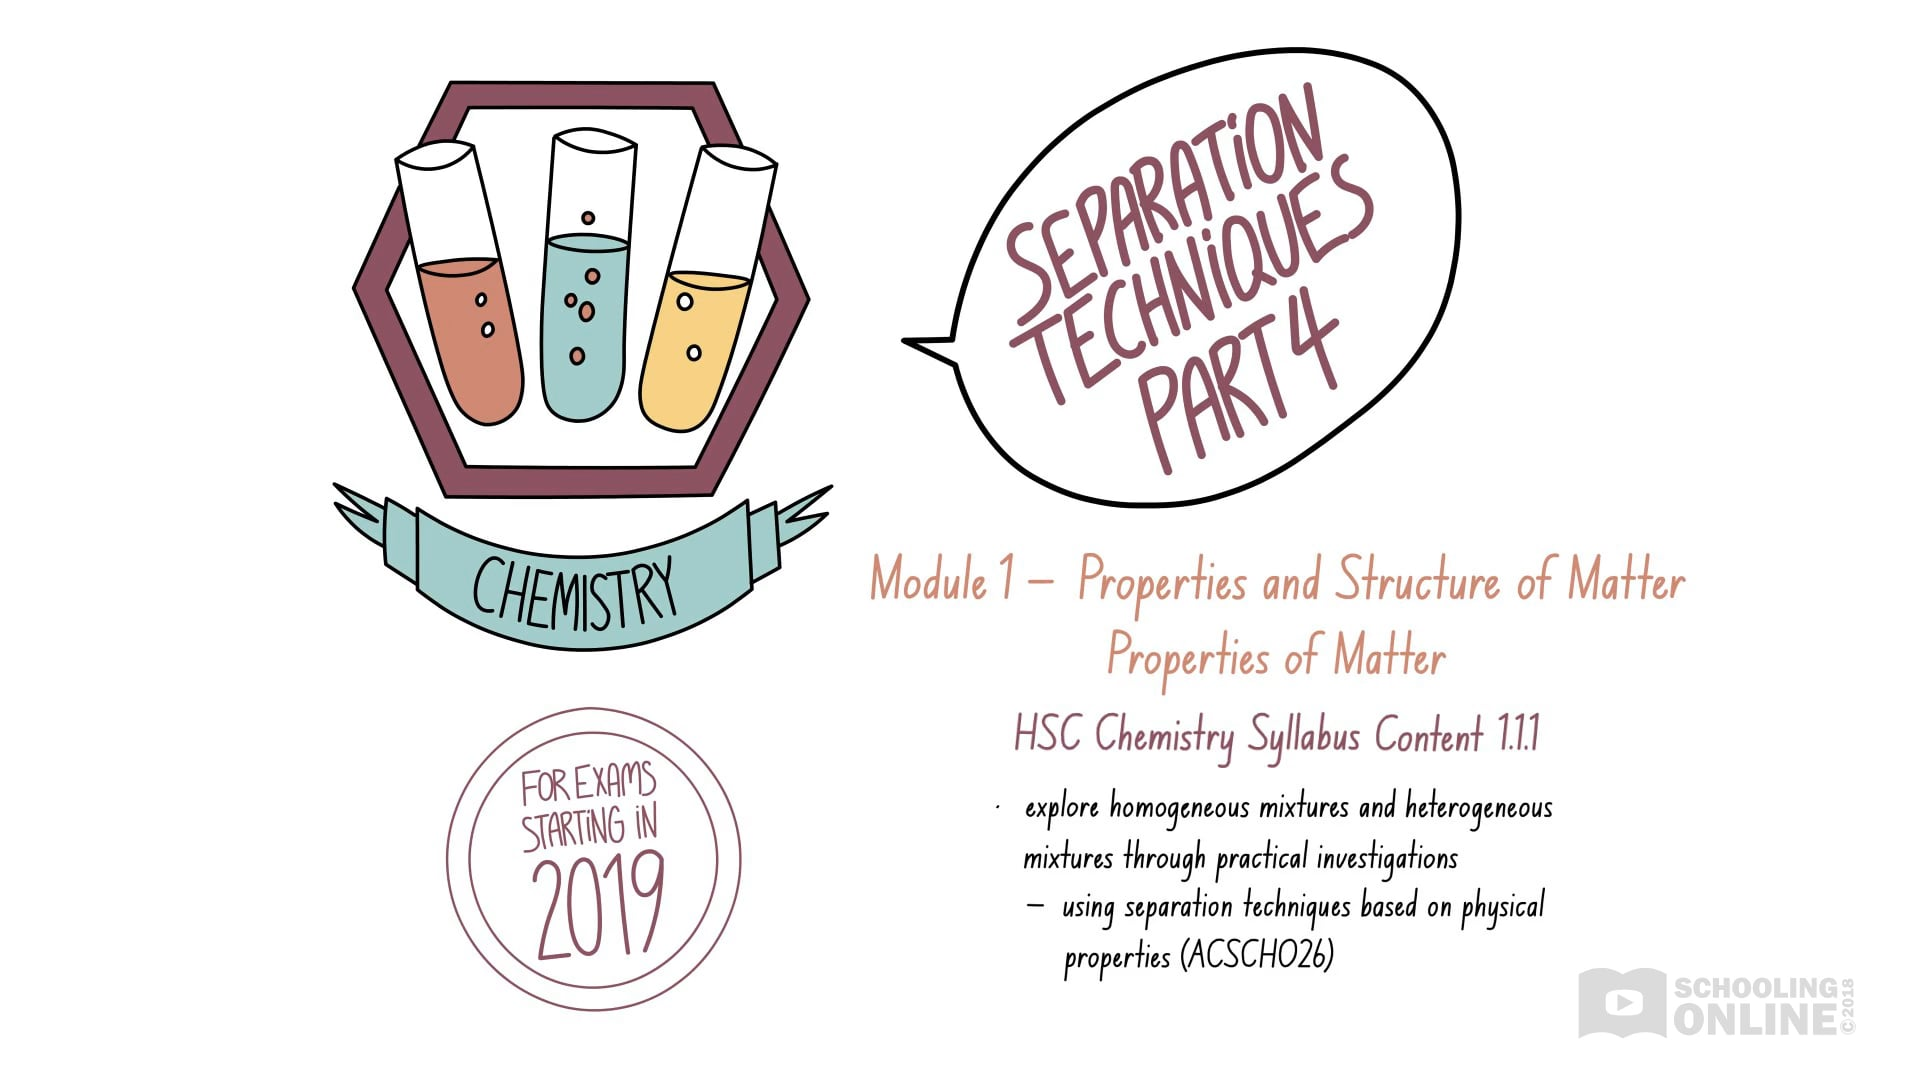 Separation Techniques 4 - Properties of Matter